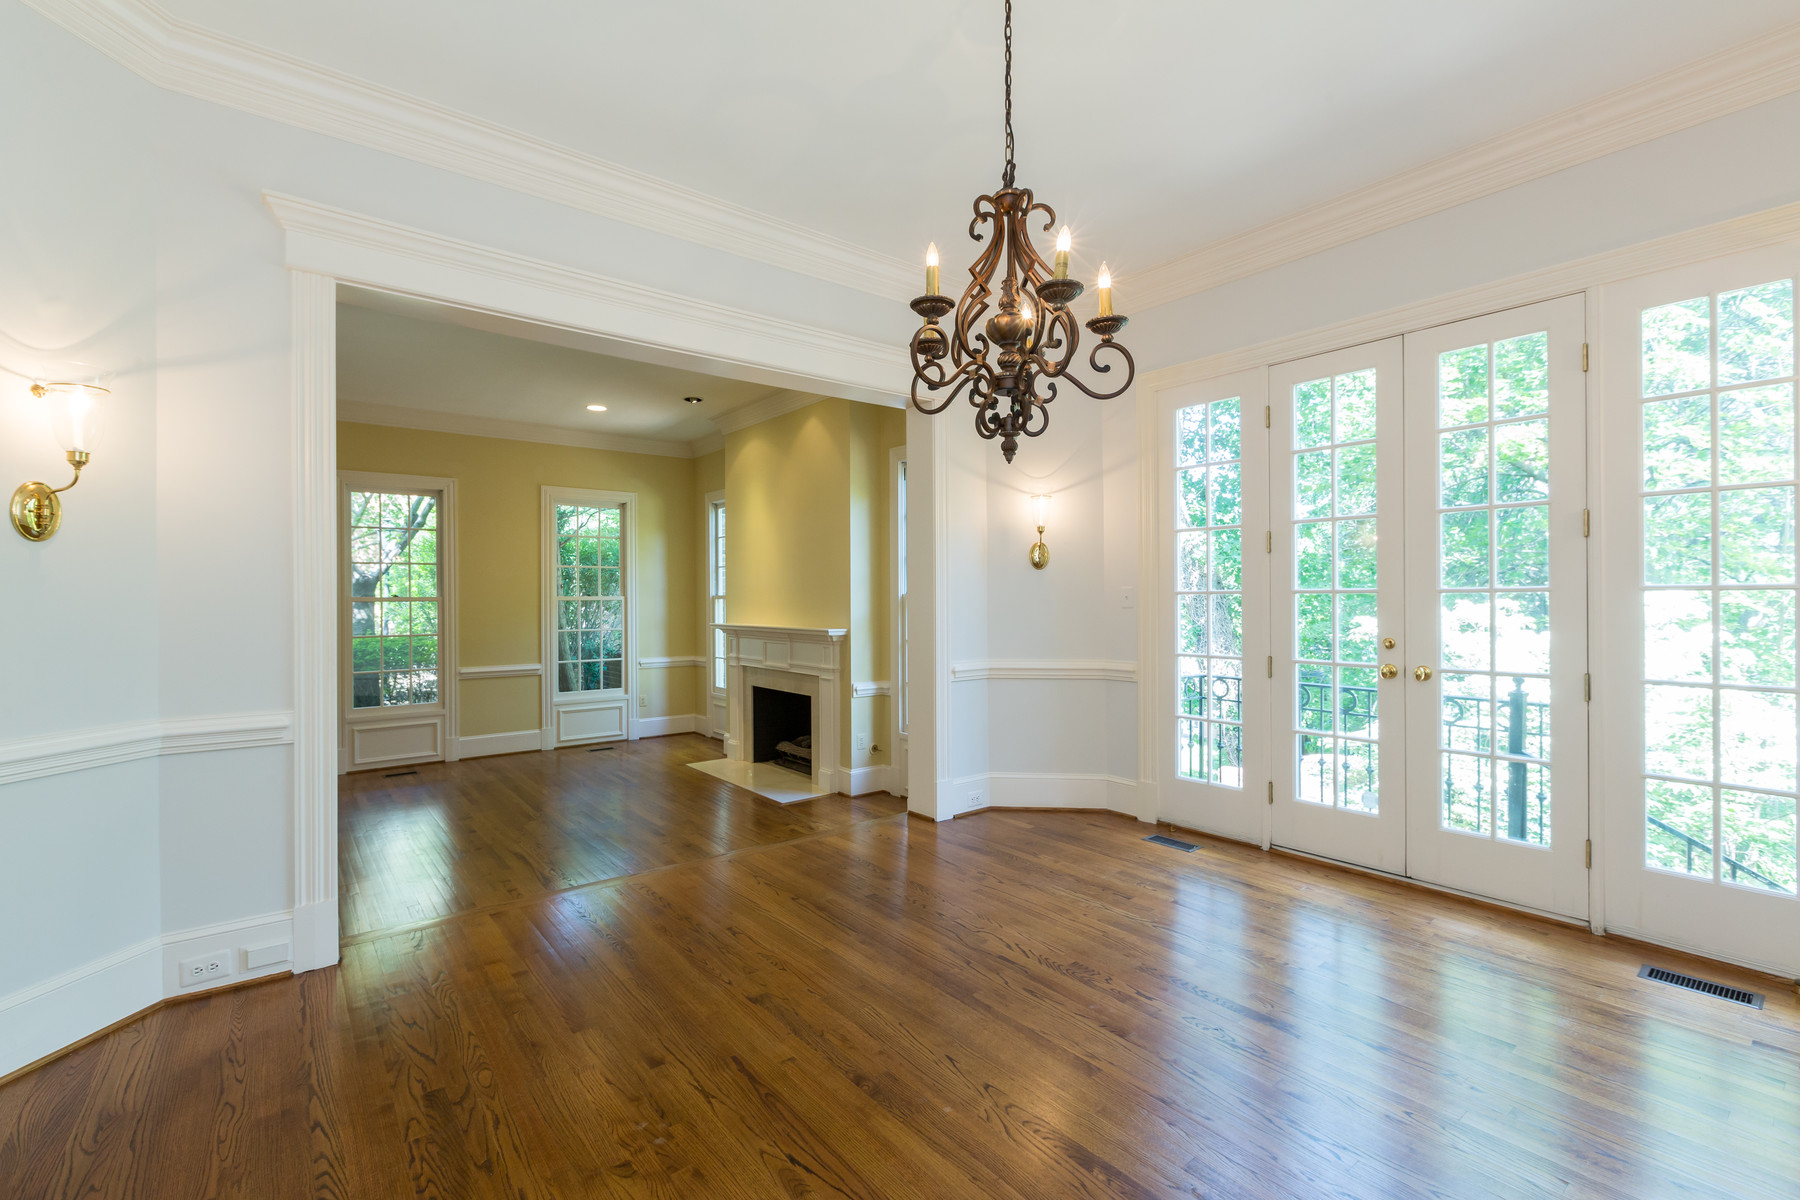 Additional photo for property listing at 1209 Stuart Robeson Drive, Mclean  McLean, Virginia 22101 Estados Unidos